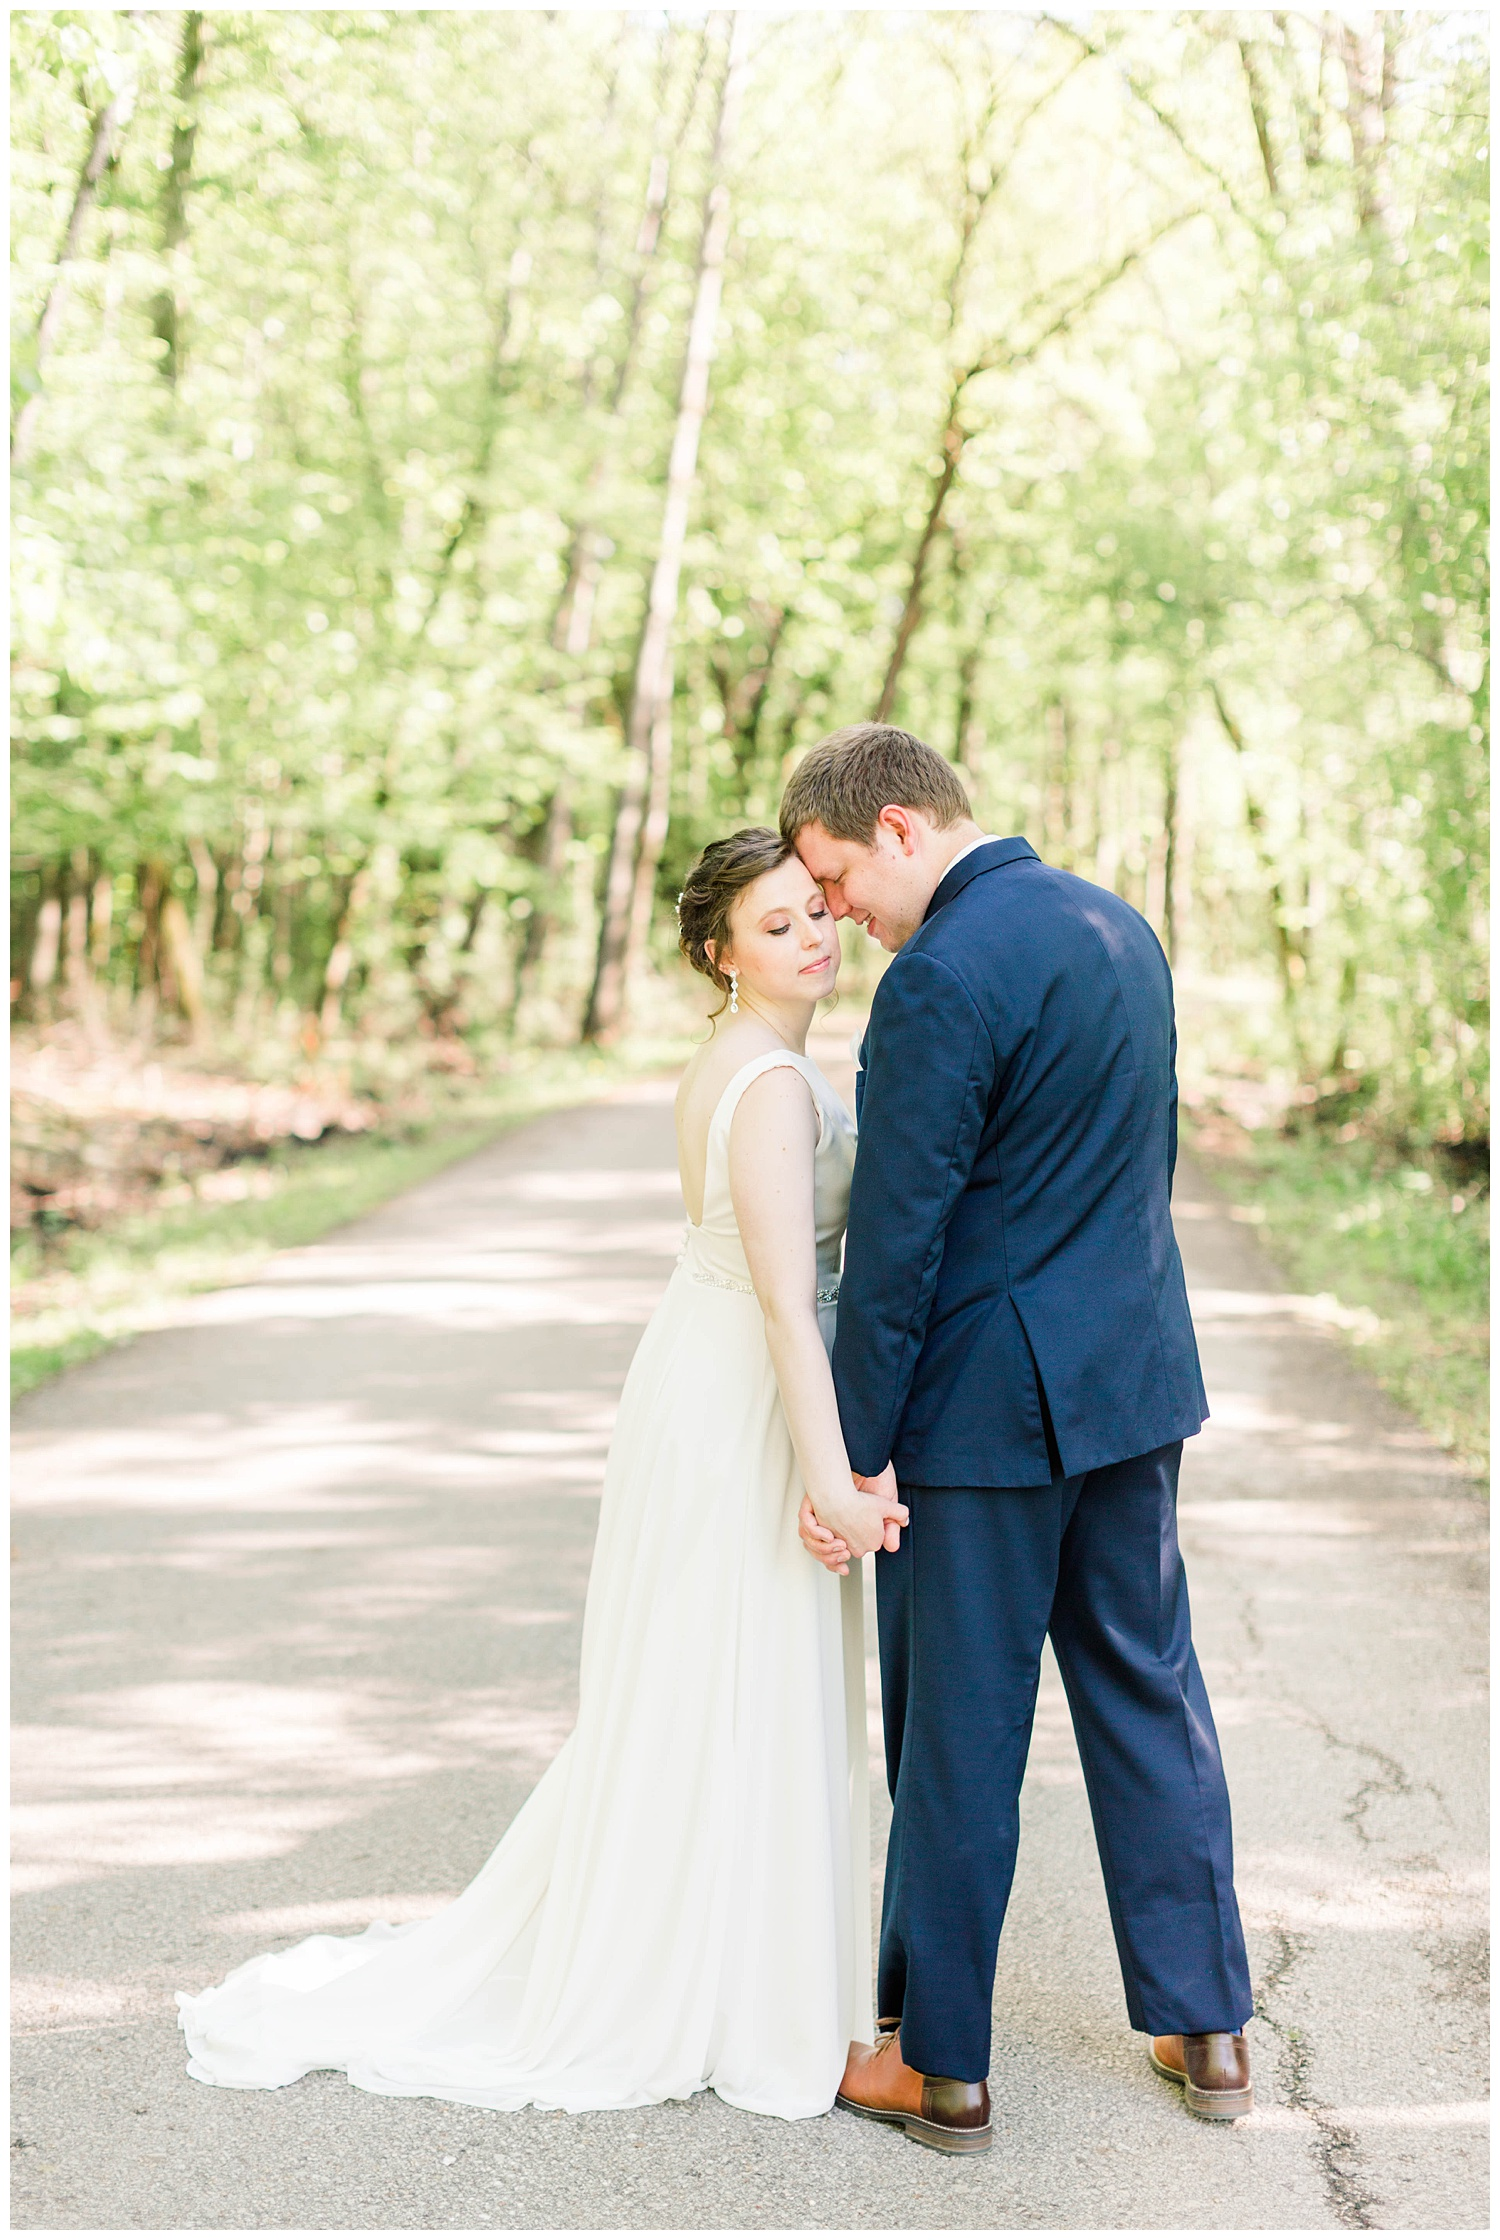 Ryan gently nuzzles his new bride in the middle of a forest pathway | Iowa Wedding Photographer